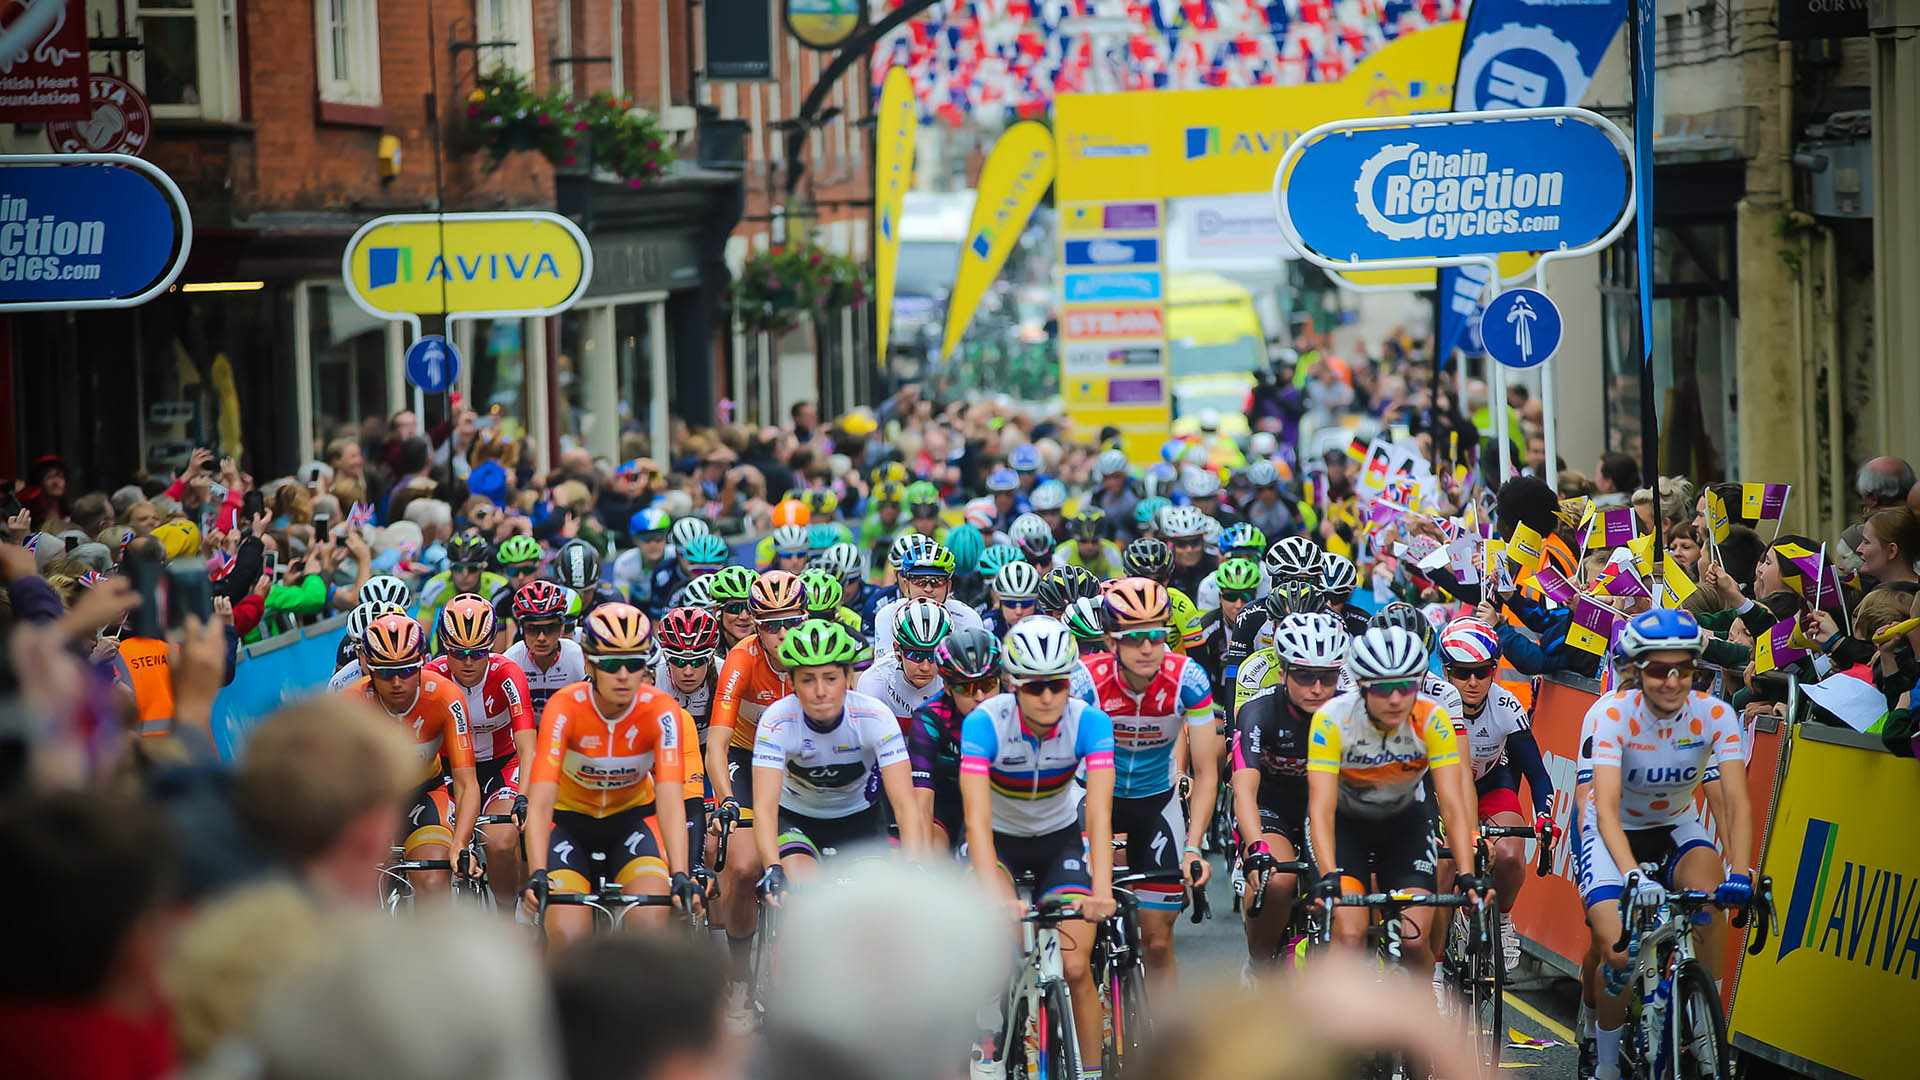 Thousands turned out for the Women's Tour stage starts and finishes, with many lining the route along the way